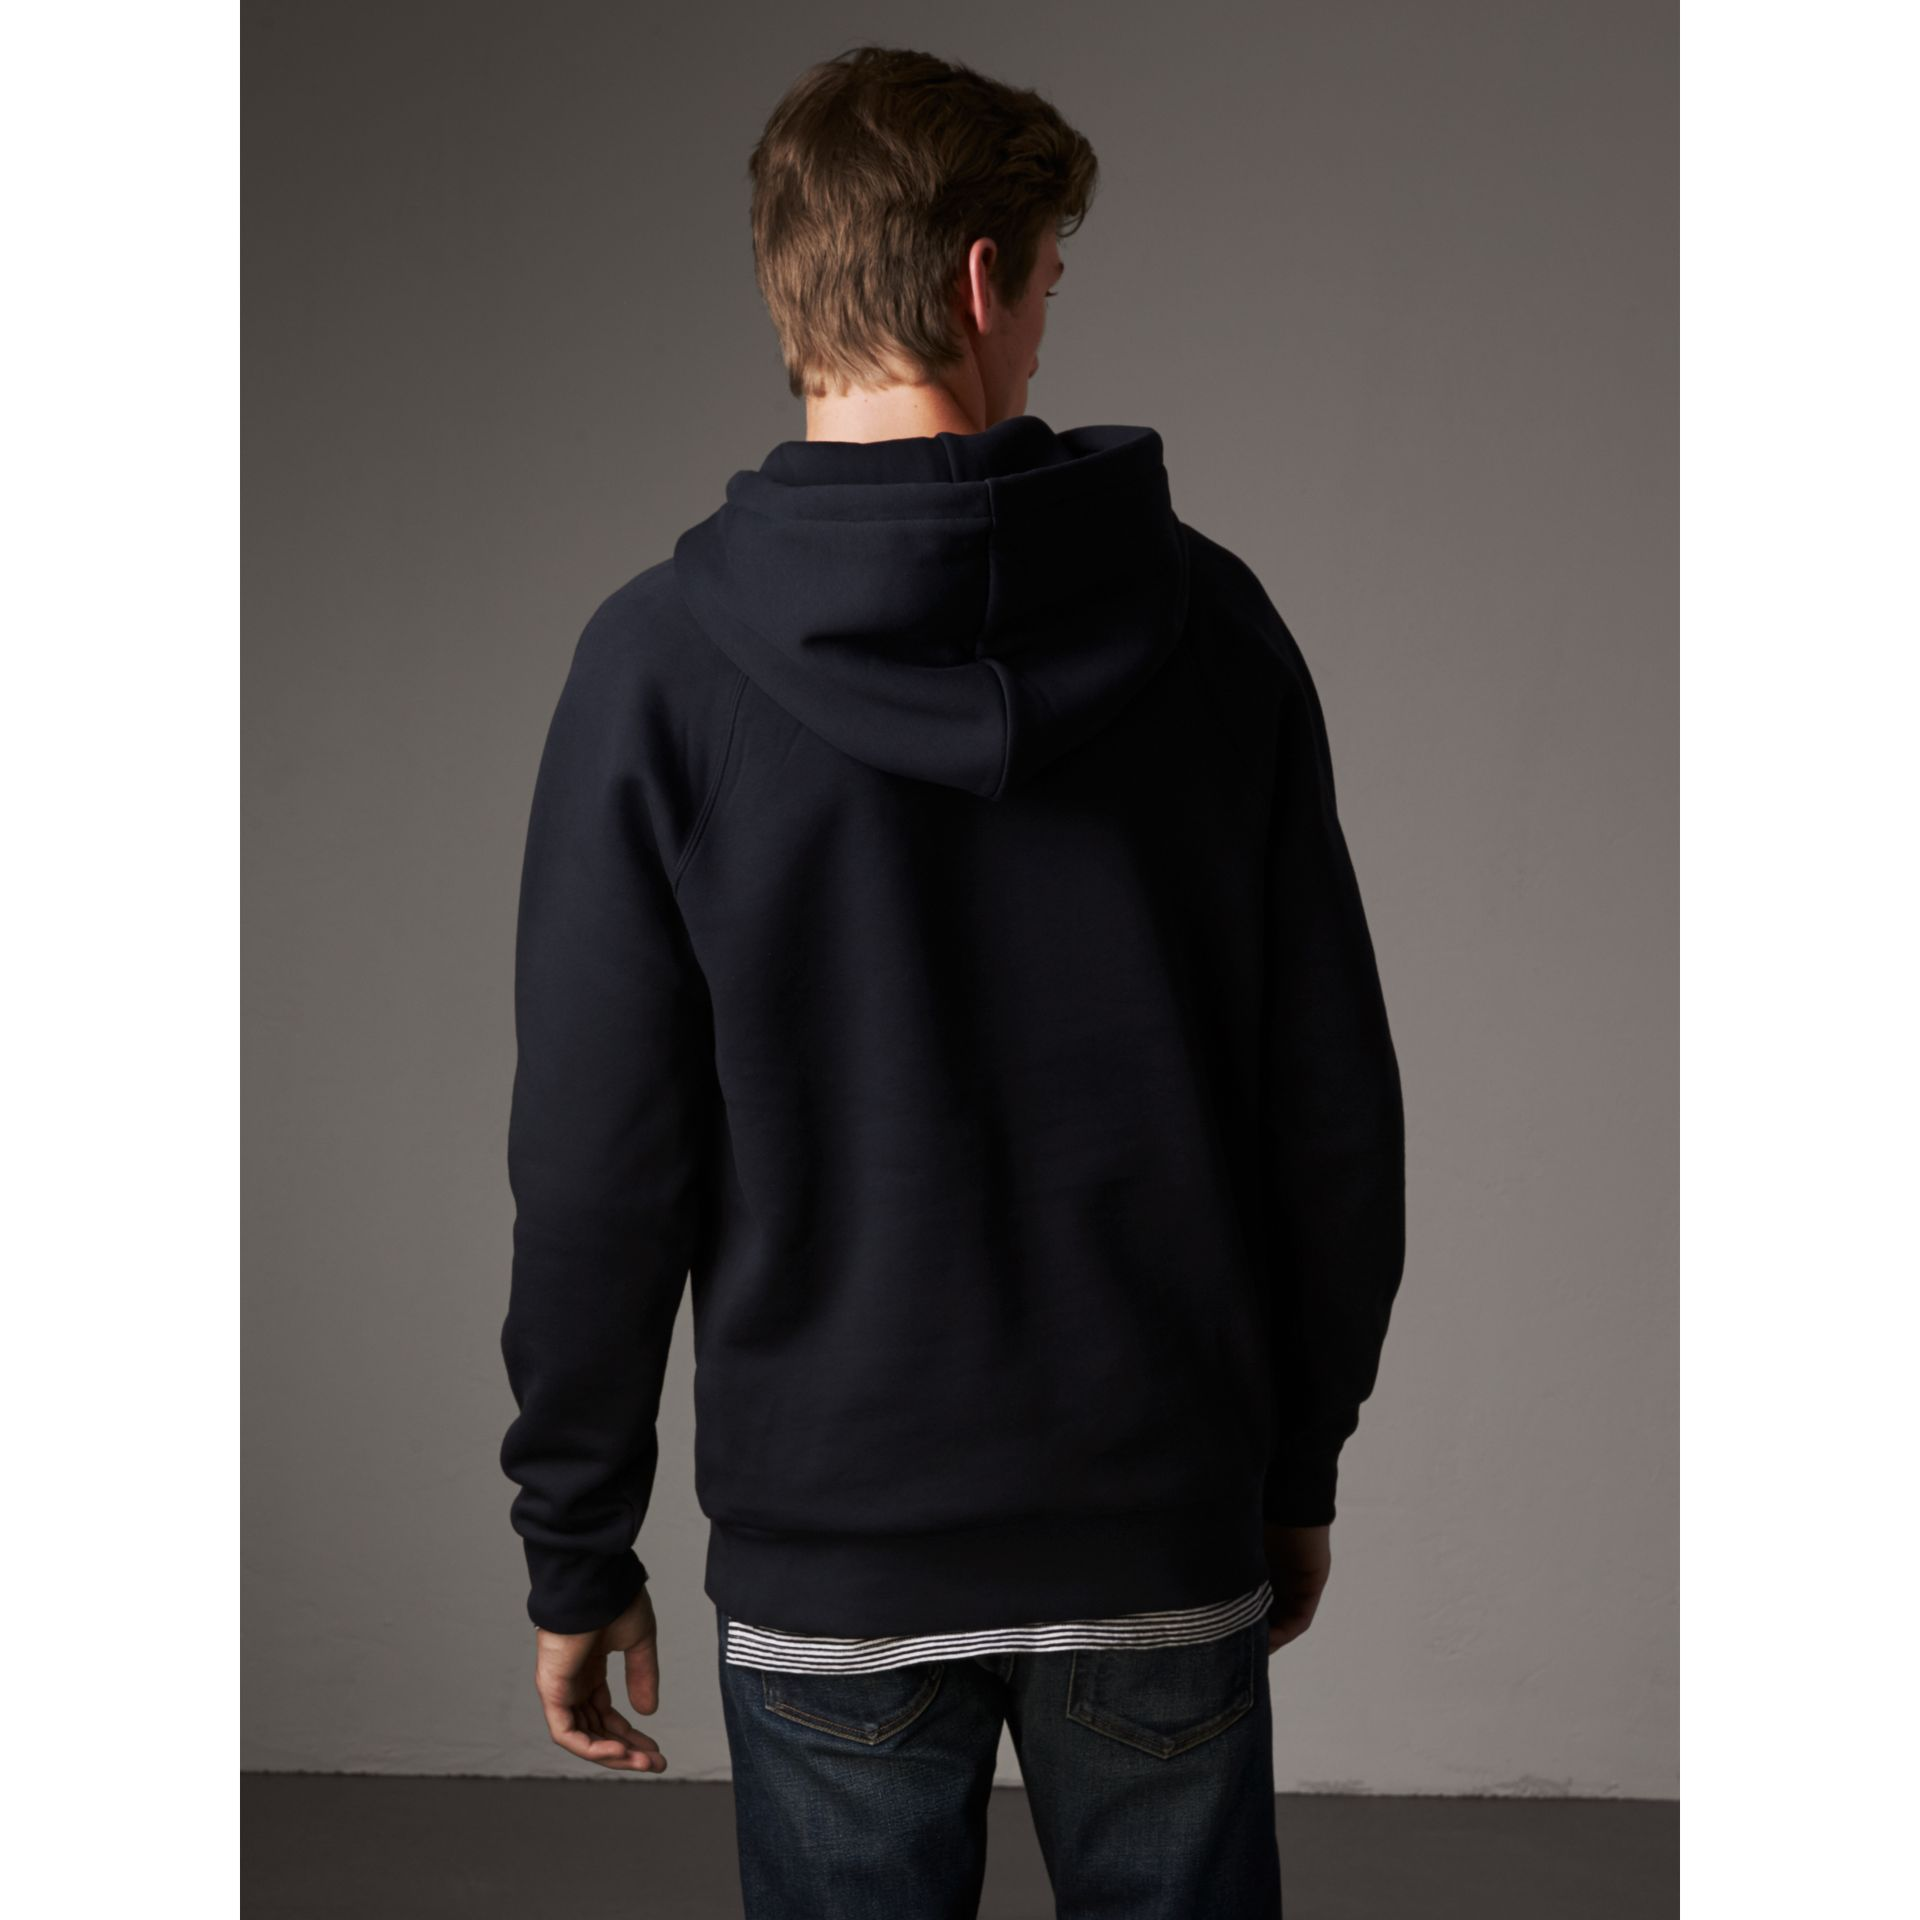 Embroidered Hooded Sweatshirt in Navy - Men | Burberry - gallery image 3